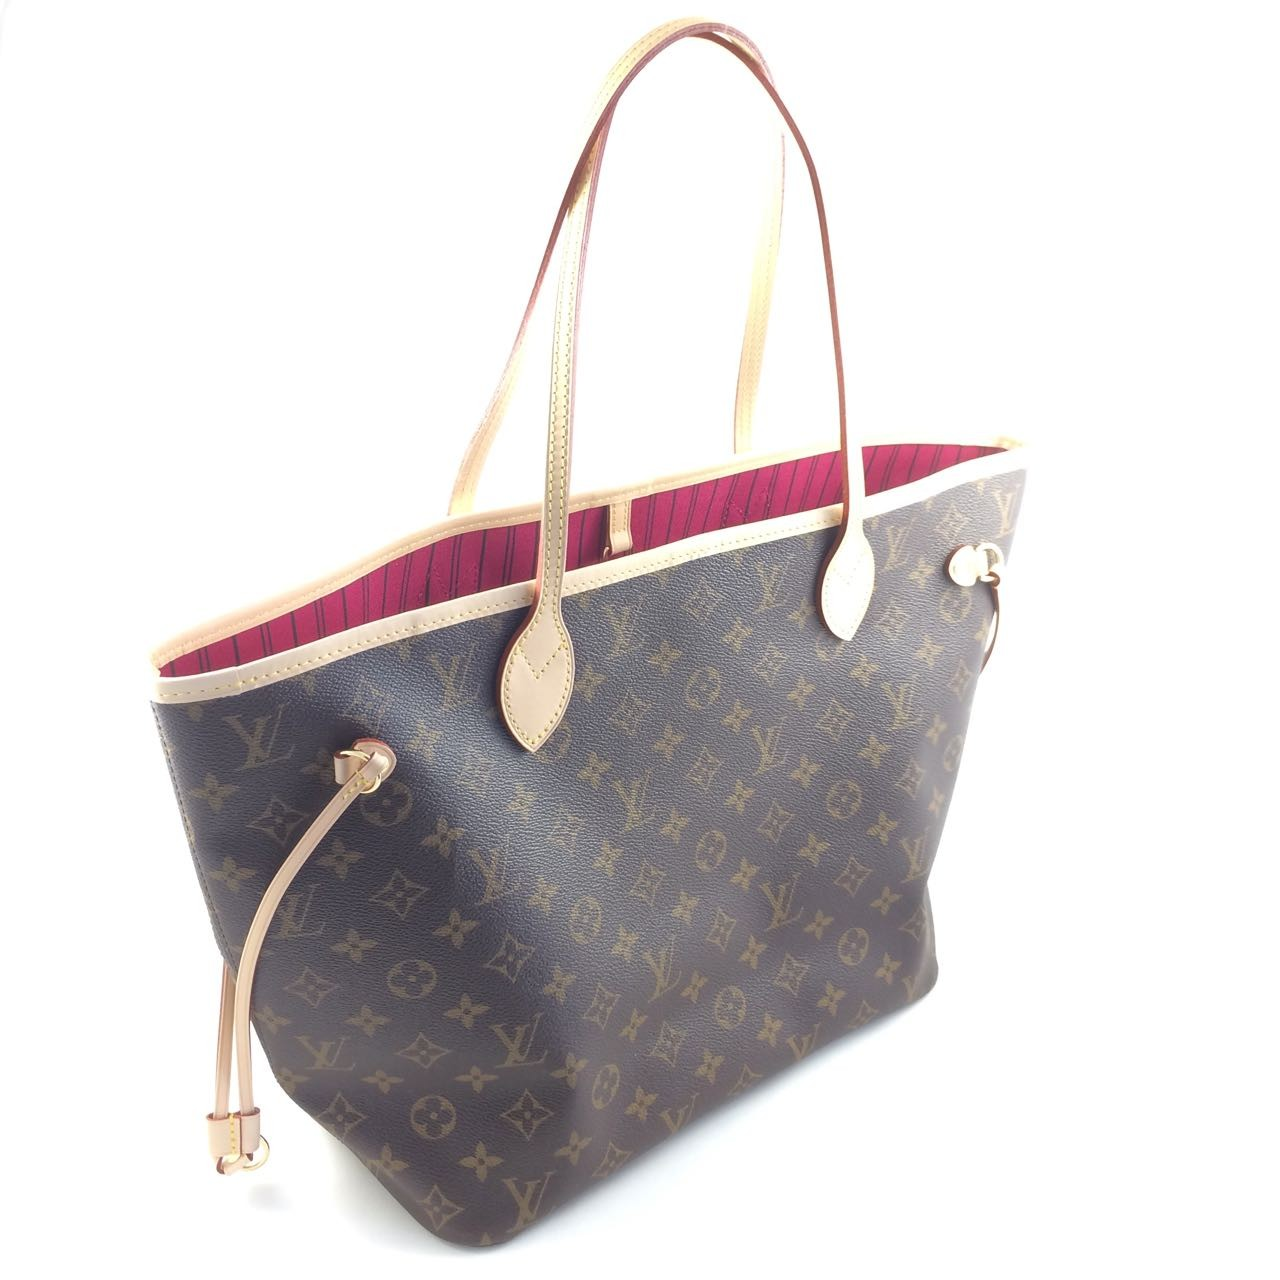 332119020865 LOUIS VUITTON M41177 NEVERFULL MEDIUM TOTE SHOPPING BAG - Designer